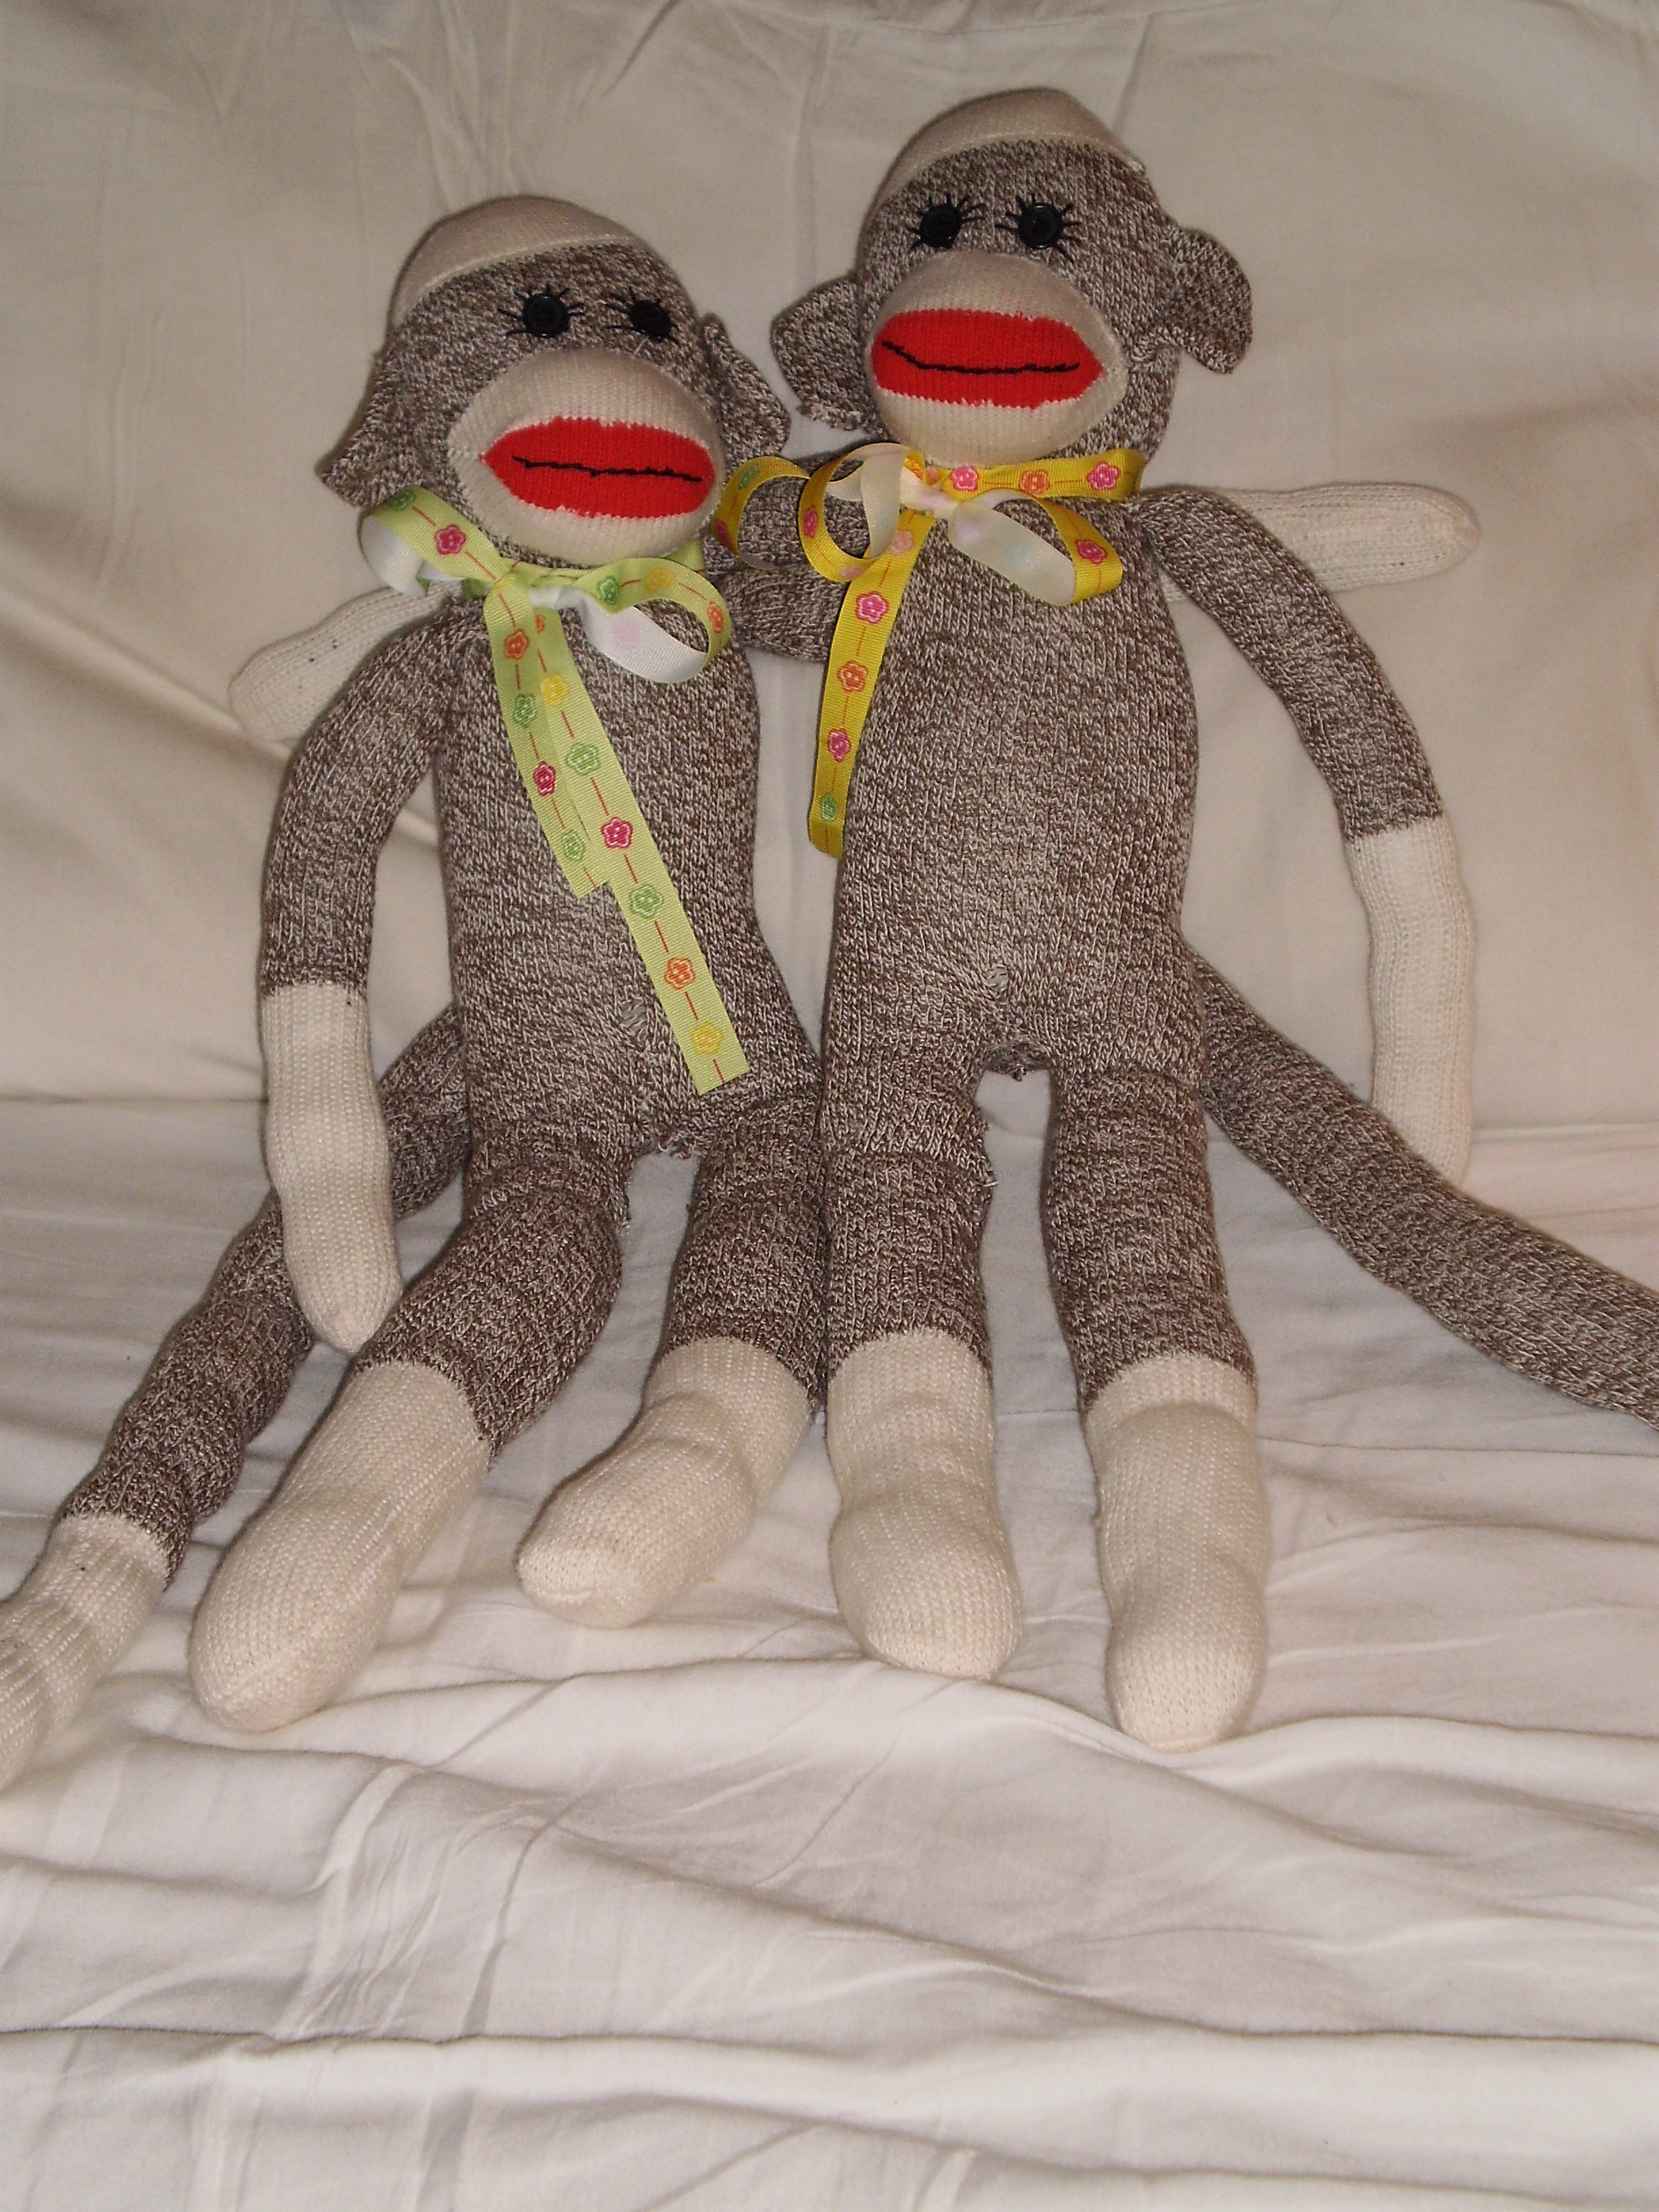 Punk Rock OR Sock Monkeys